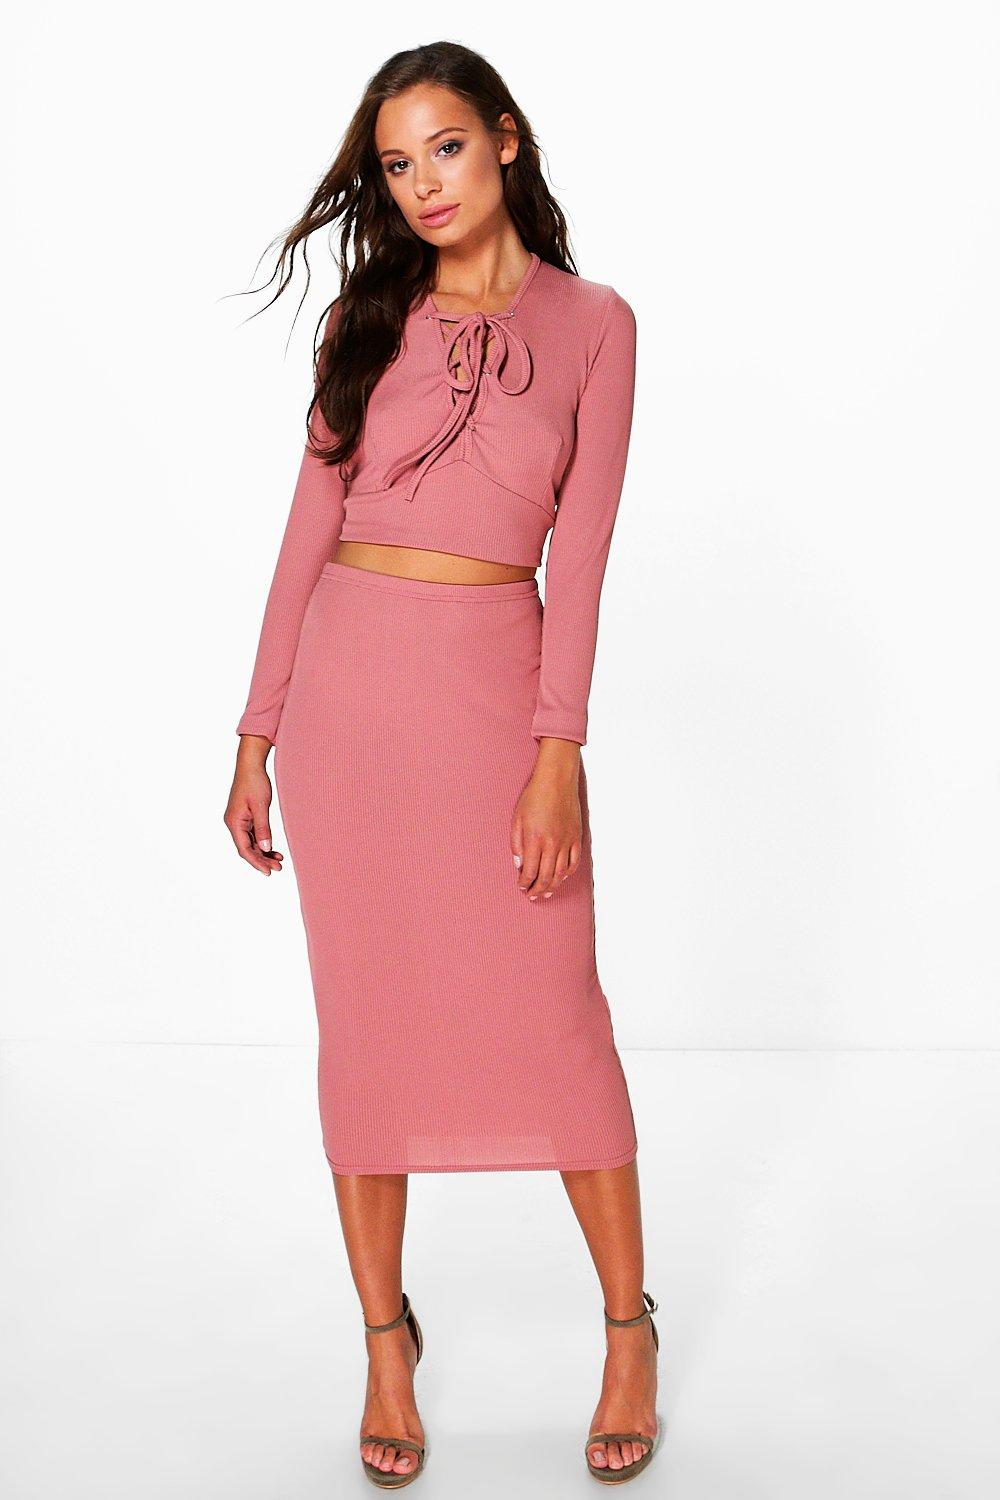 Freya Rib Lace Up Crop And Midi Skirt Co-Ord